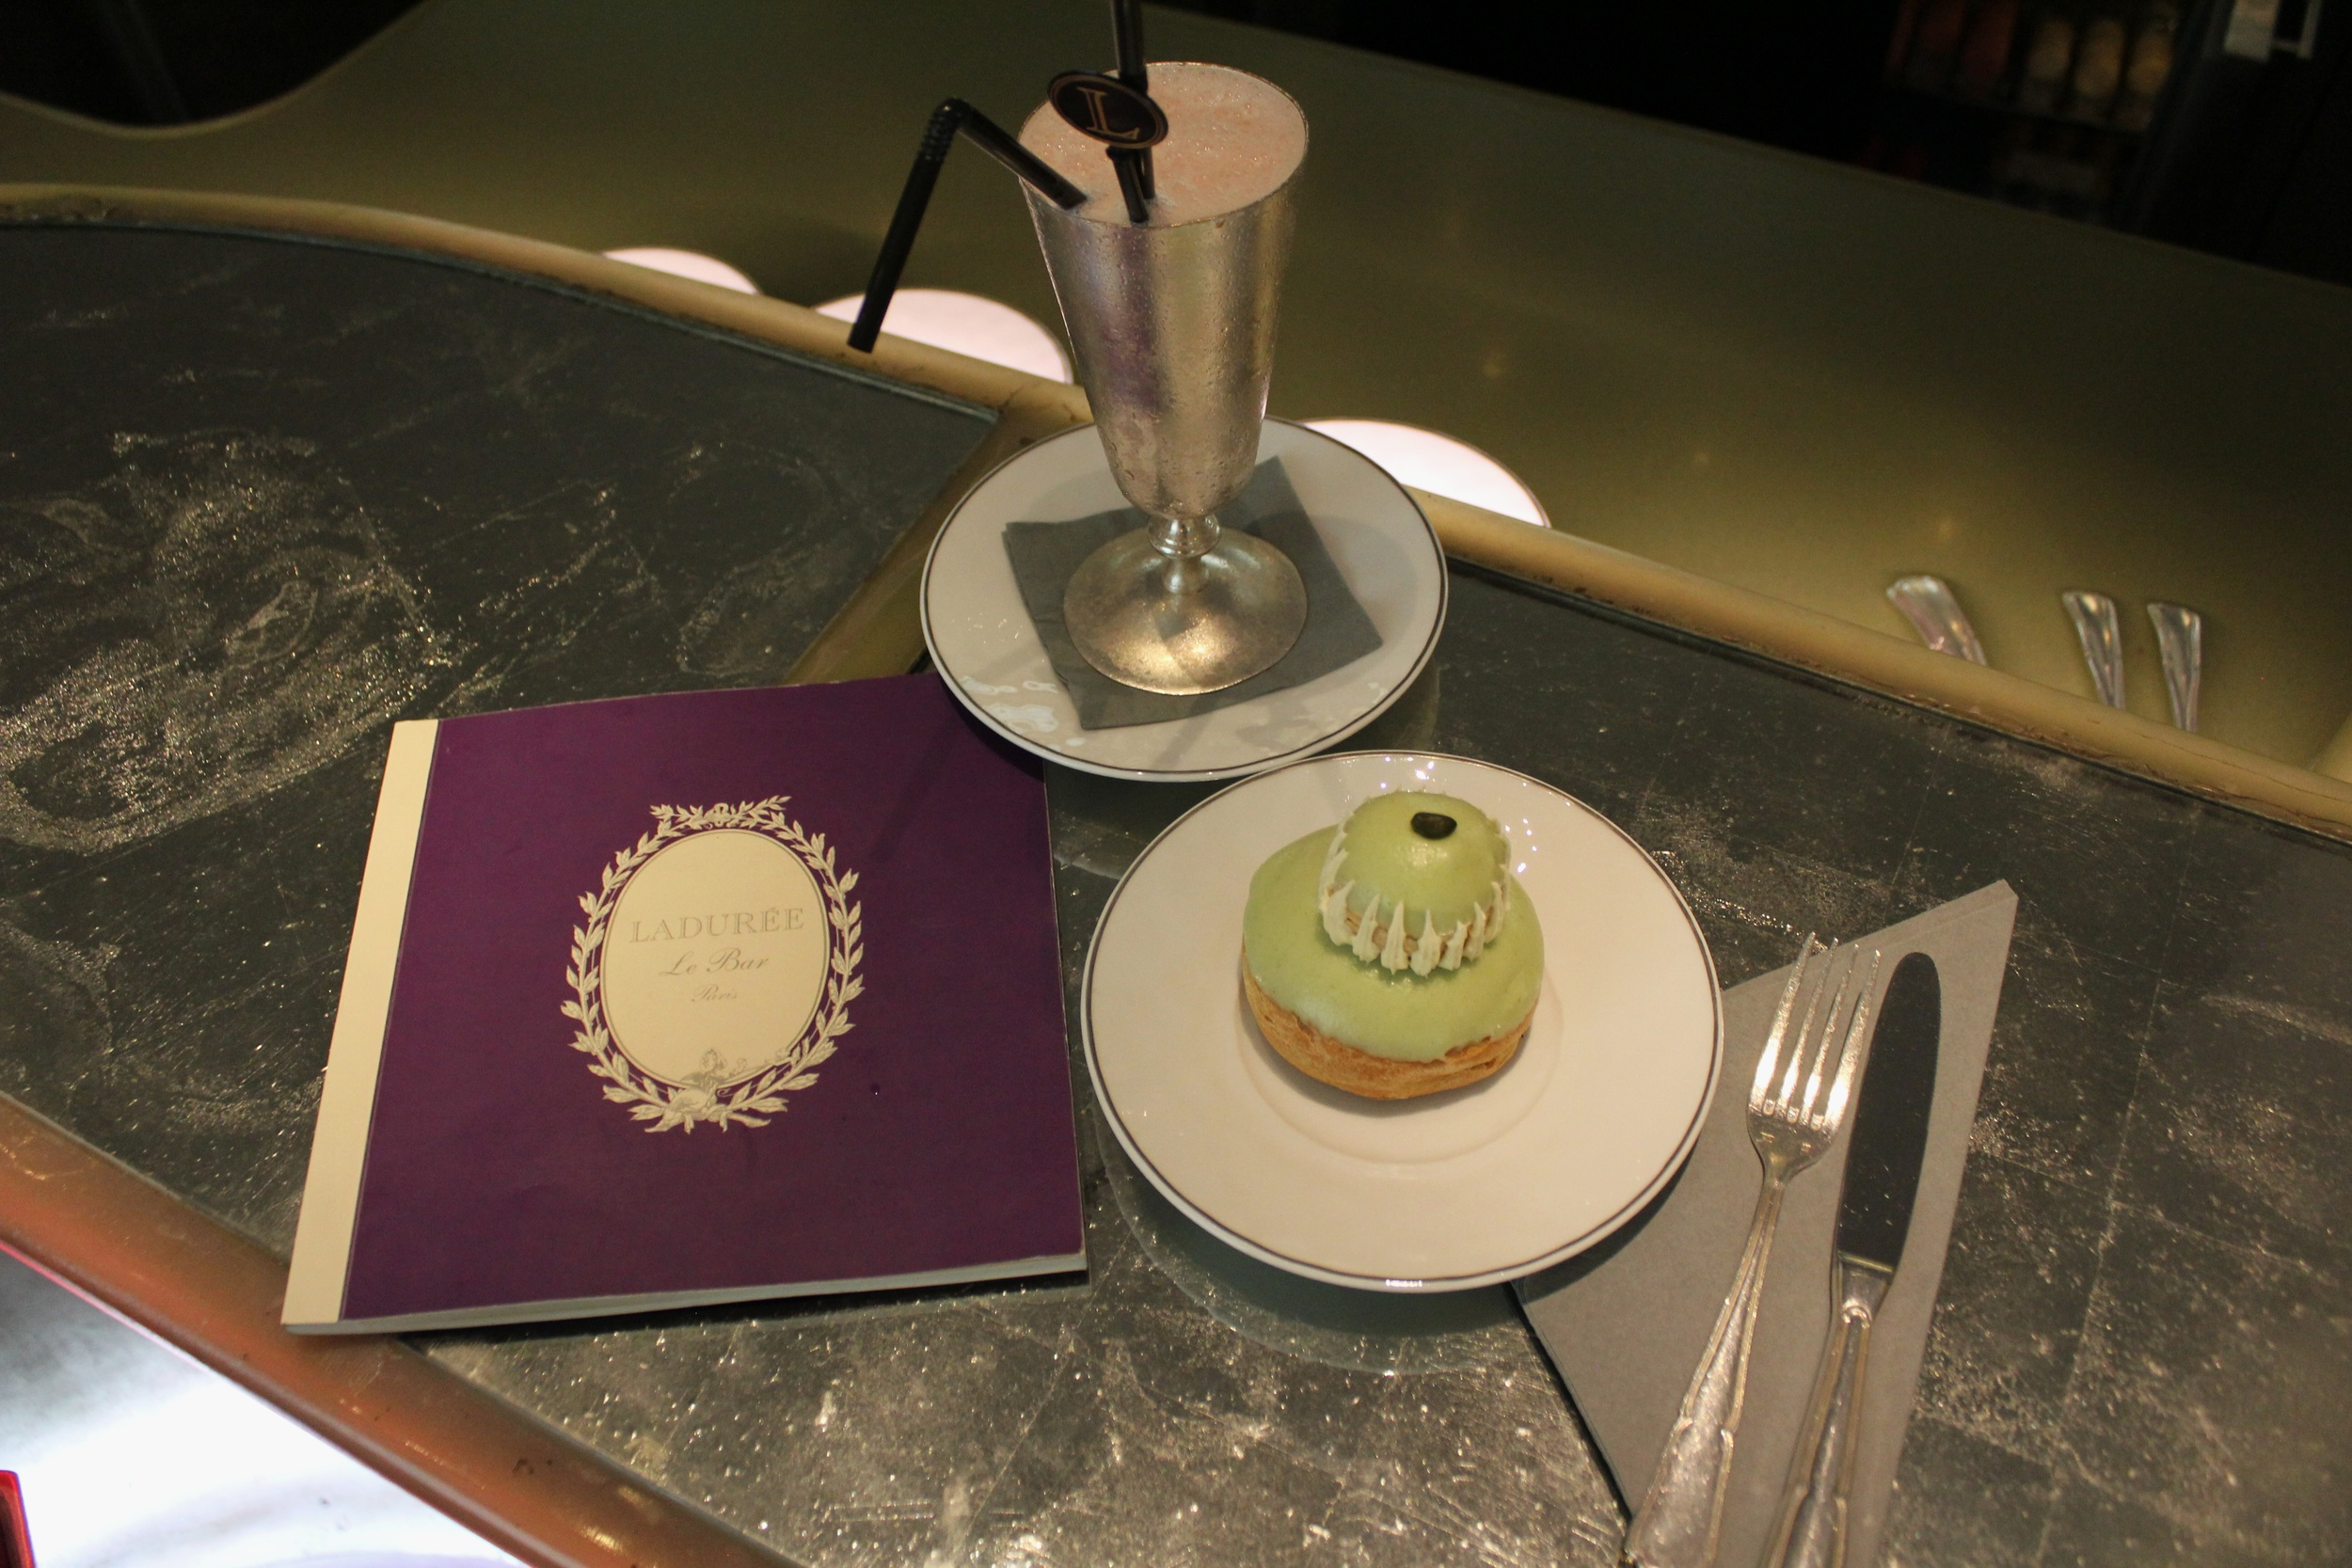 Trying the rose milkshake and pistachio religieuse